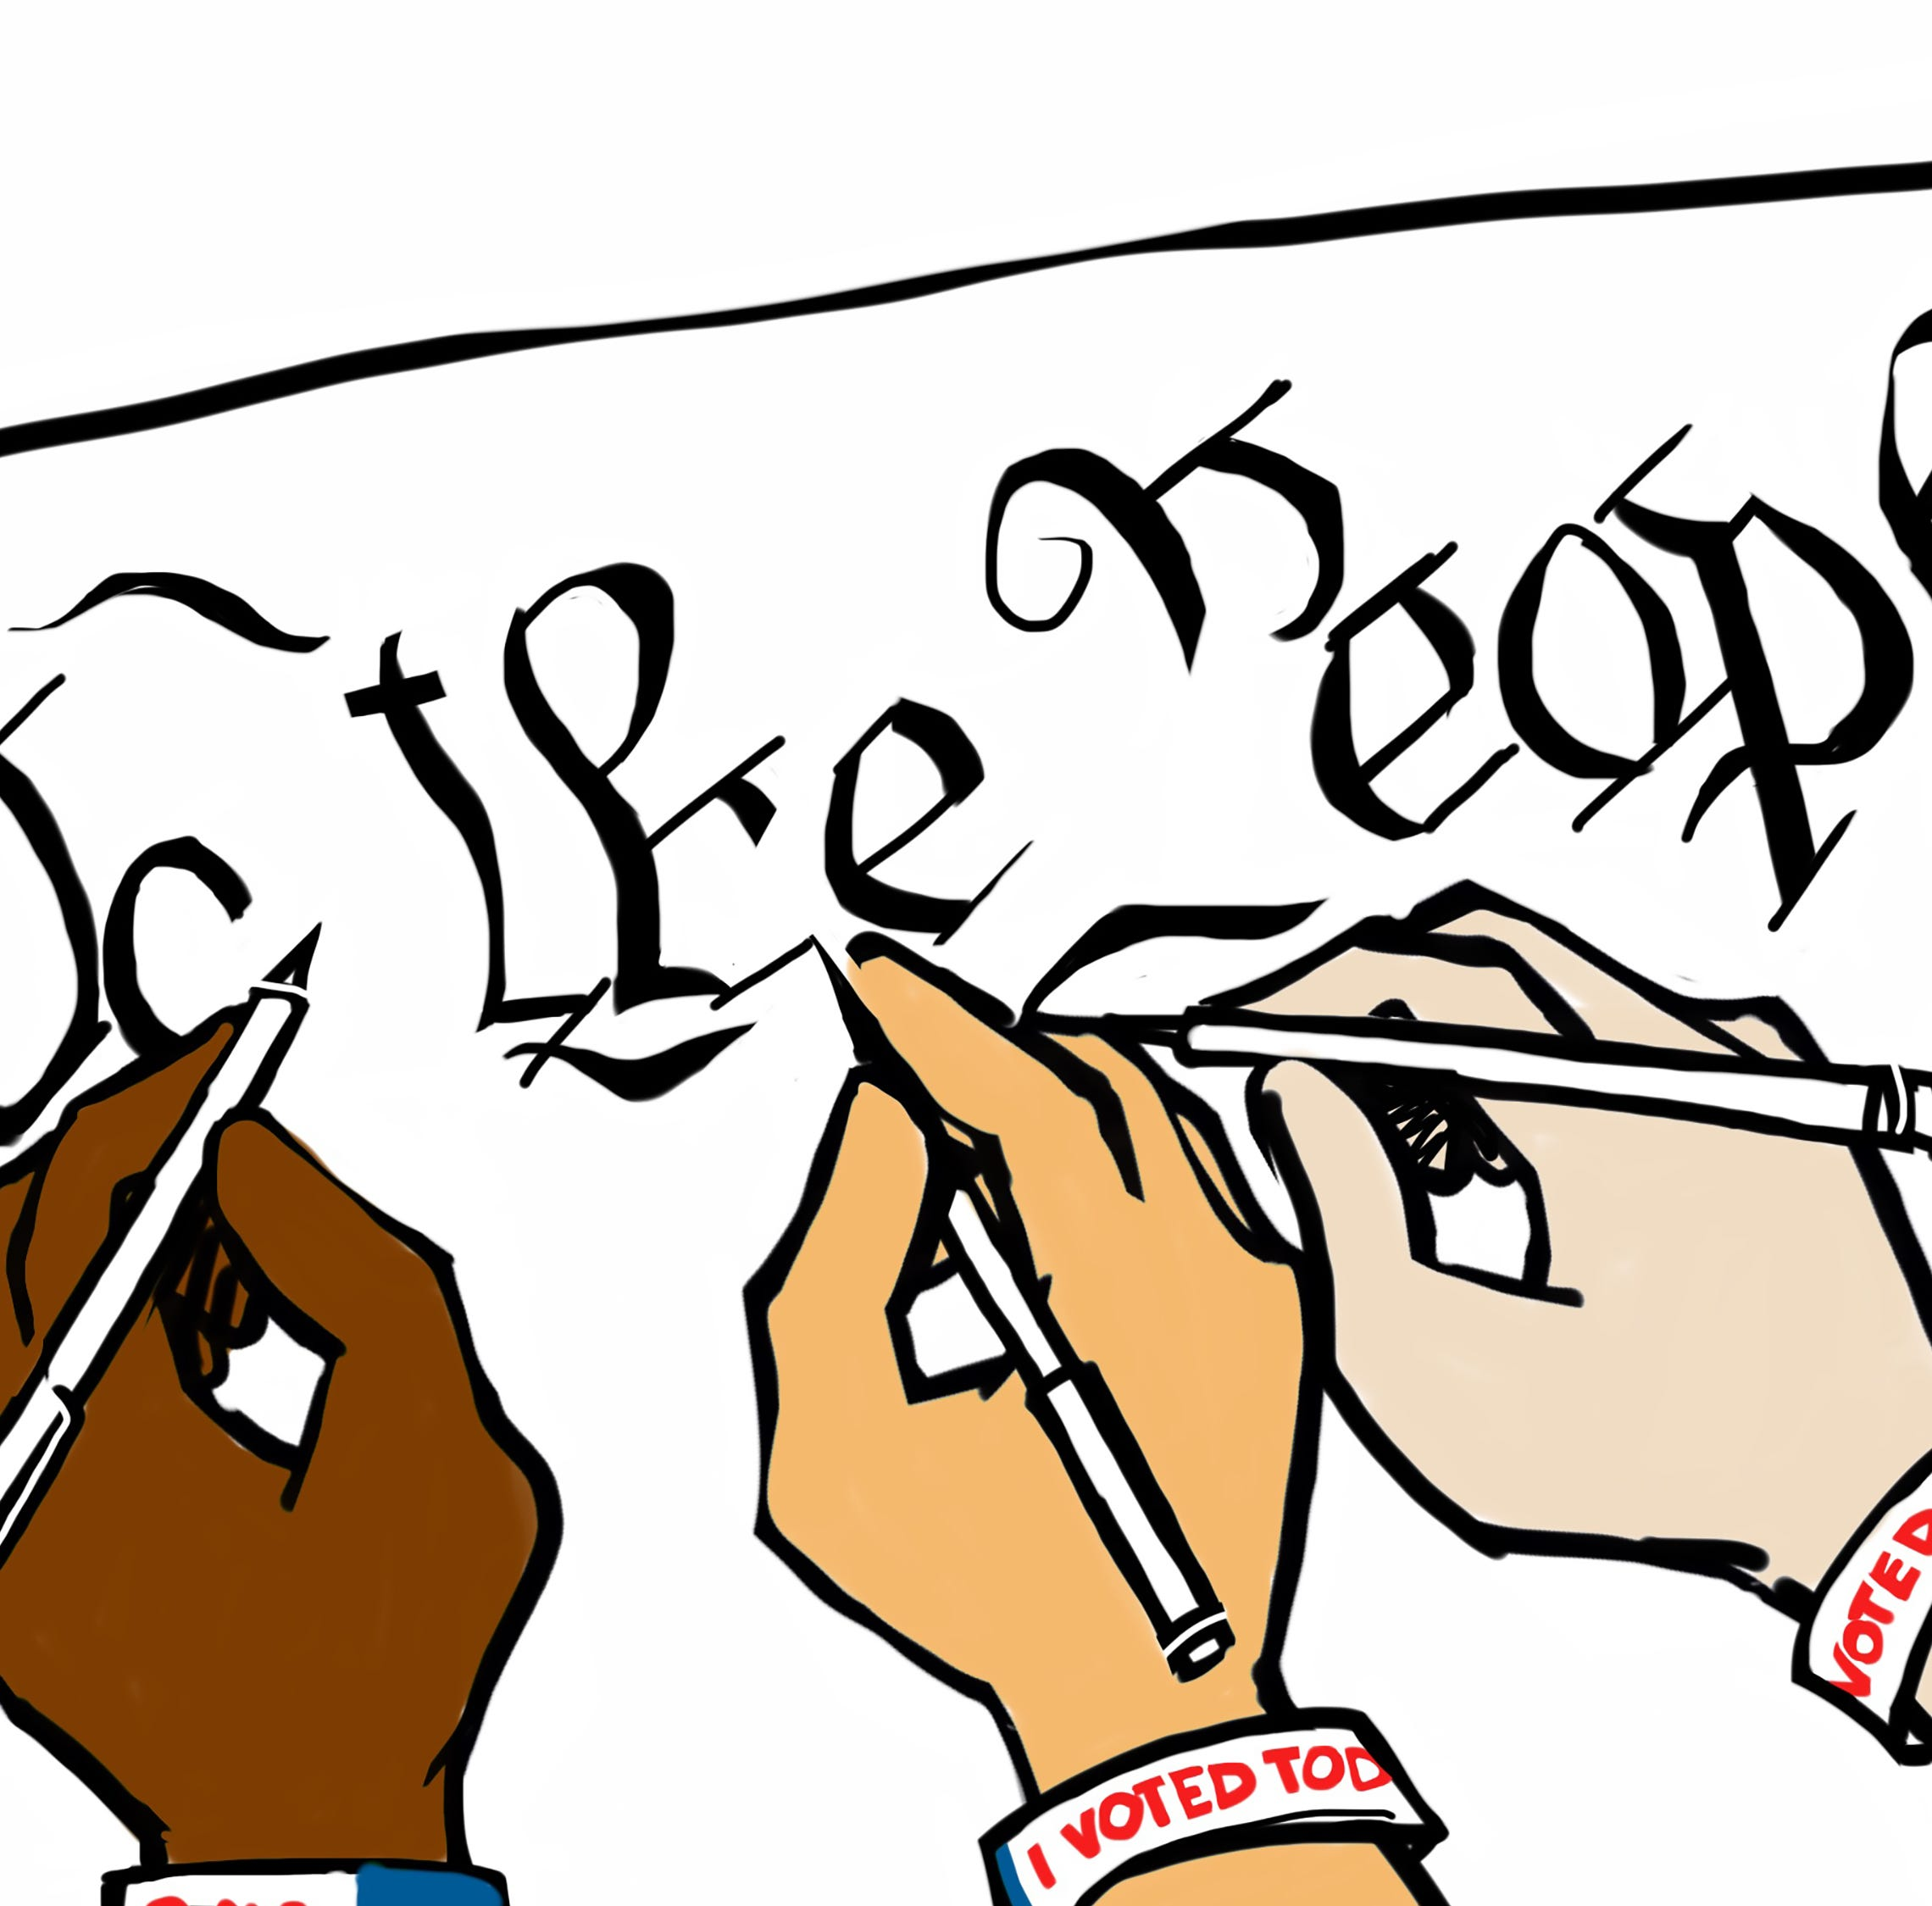 Leaders need a better understanding of Constitution